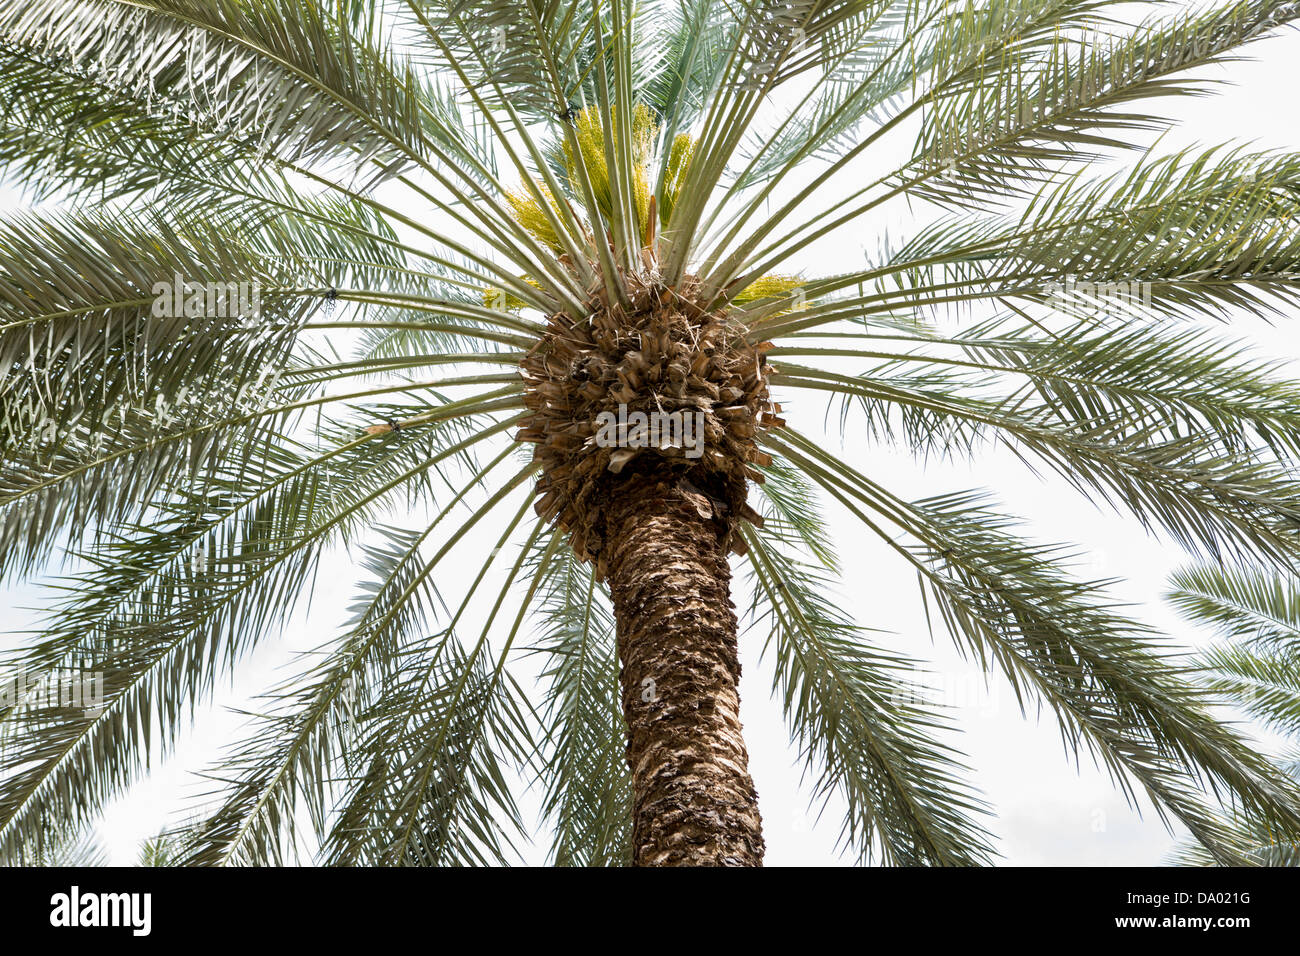 Date Palm Tree Oasis Stock Photos Date Palm Tree Oasis Stock